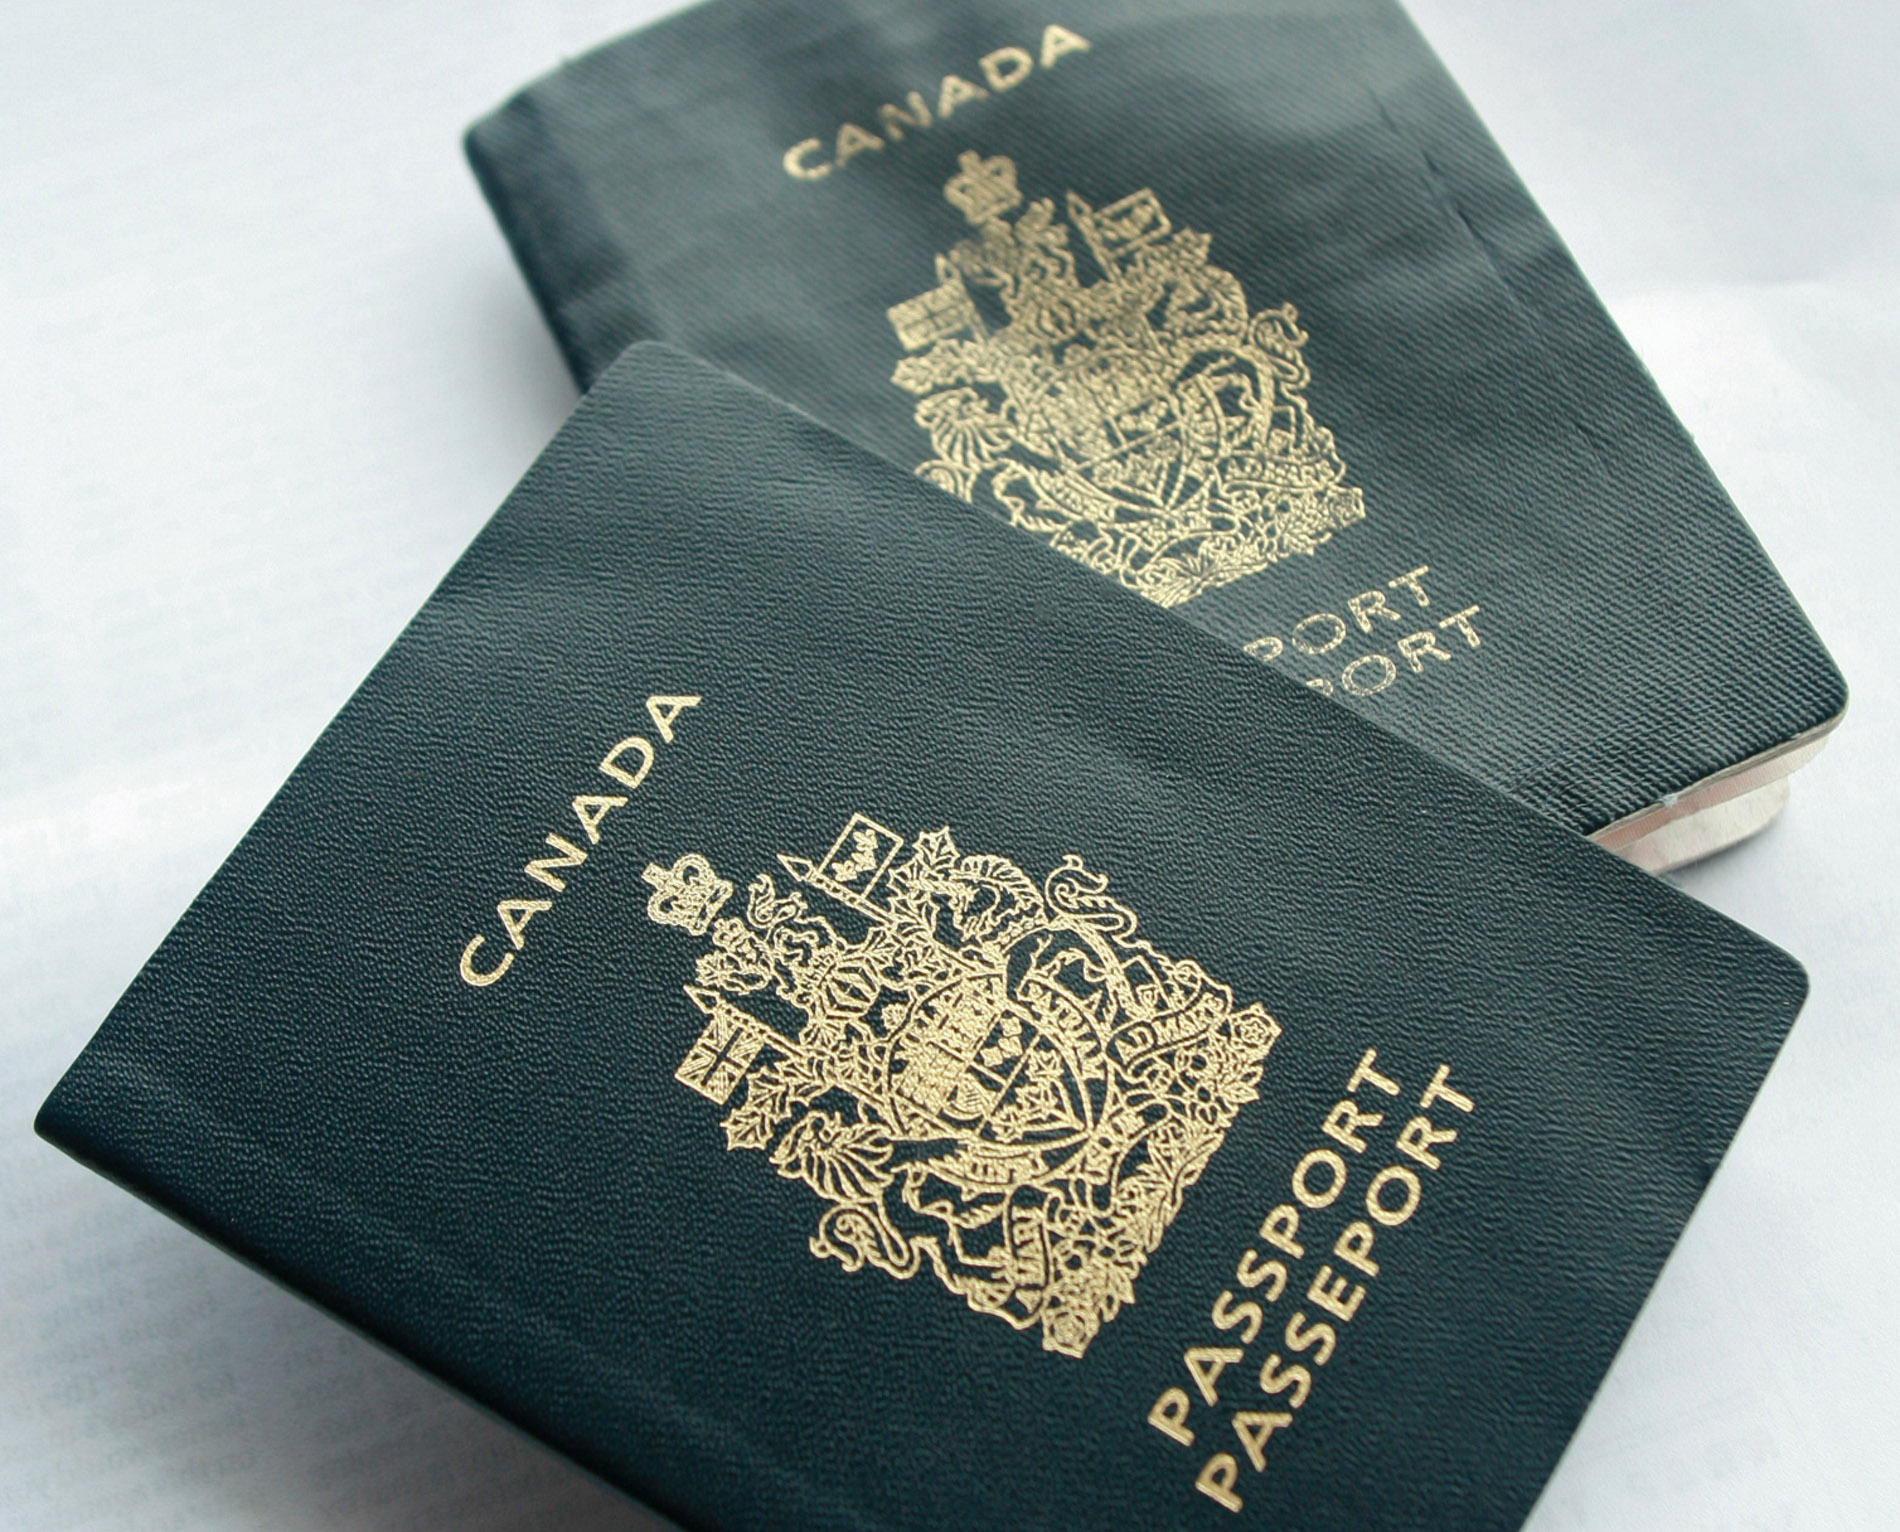 This Jan. 22. 2007 file photo shows two Canadian passports.